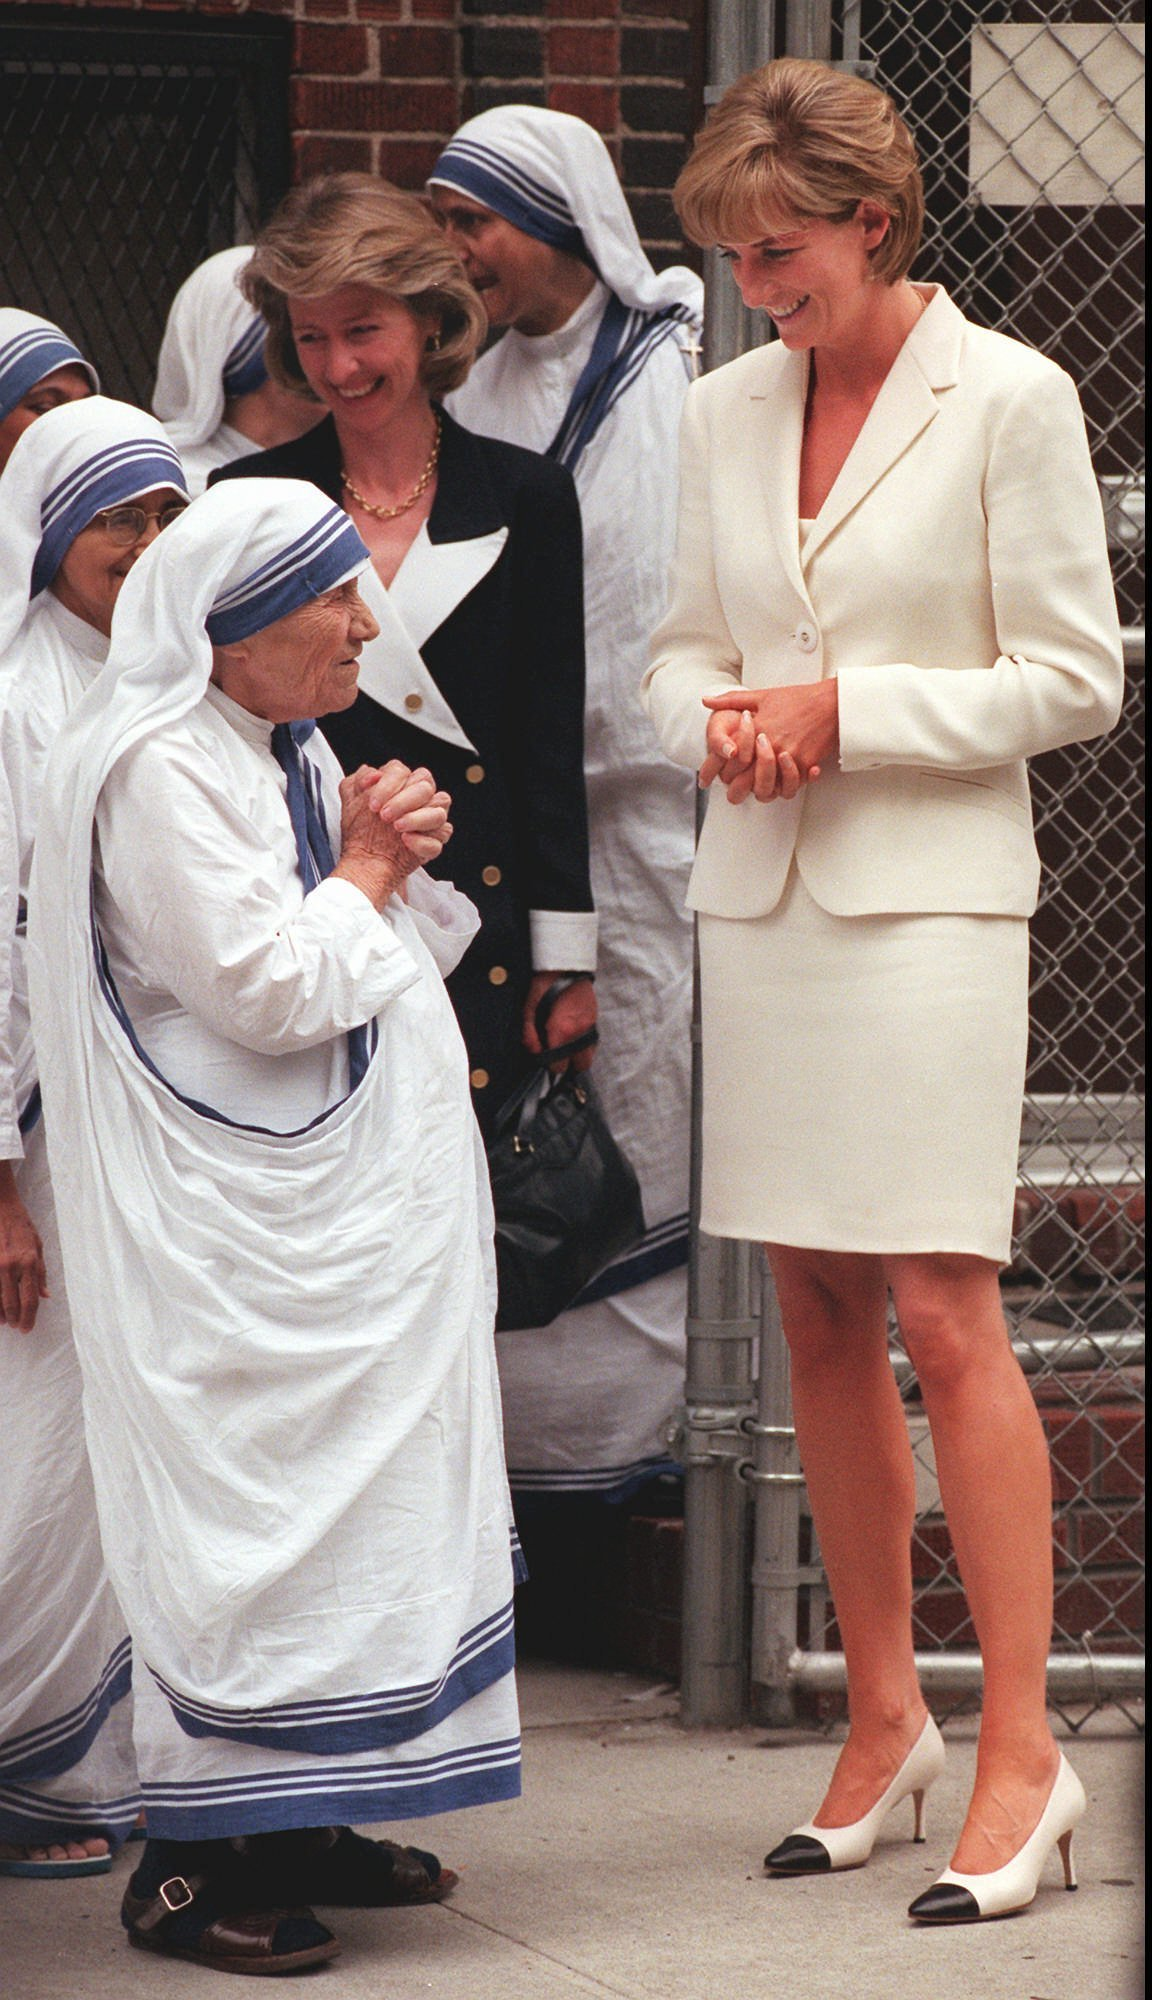 "FILE - In this Wednesday, June 18, 1997 file photo, Mother Teresa, left, says goodbye to Britain's Princess Diana after receiving a visit from her in New York. Princess Diana met privately for 40 minutes with Mother Teresa at The Missionaries of Charity in the South Bronx section of New York. It has been 20 years since the death of Princess Diana in a car crash in Paris and the outpouring of grief that followed the death of the ""people's princess.""  (AP Photo/Bebeto Matthews, File)"